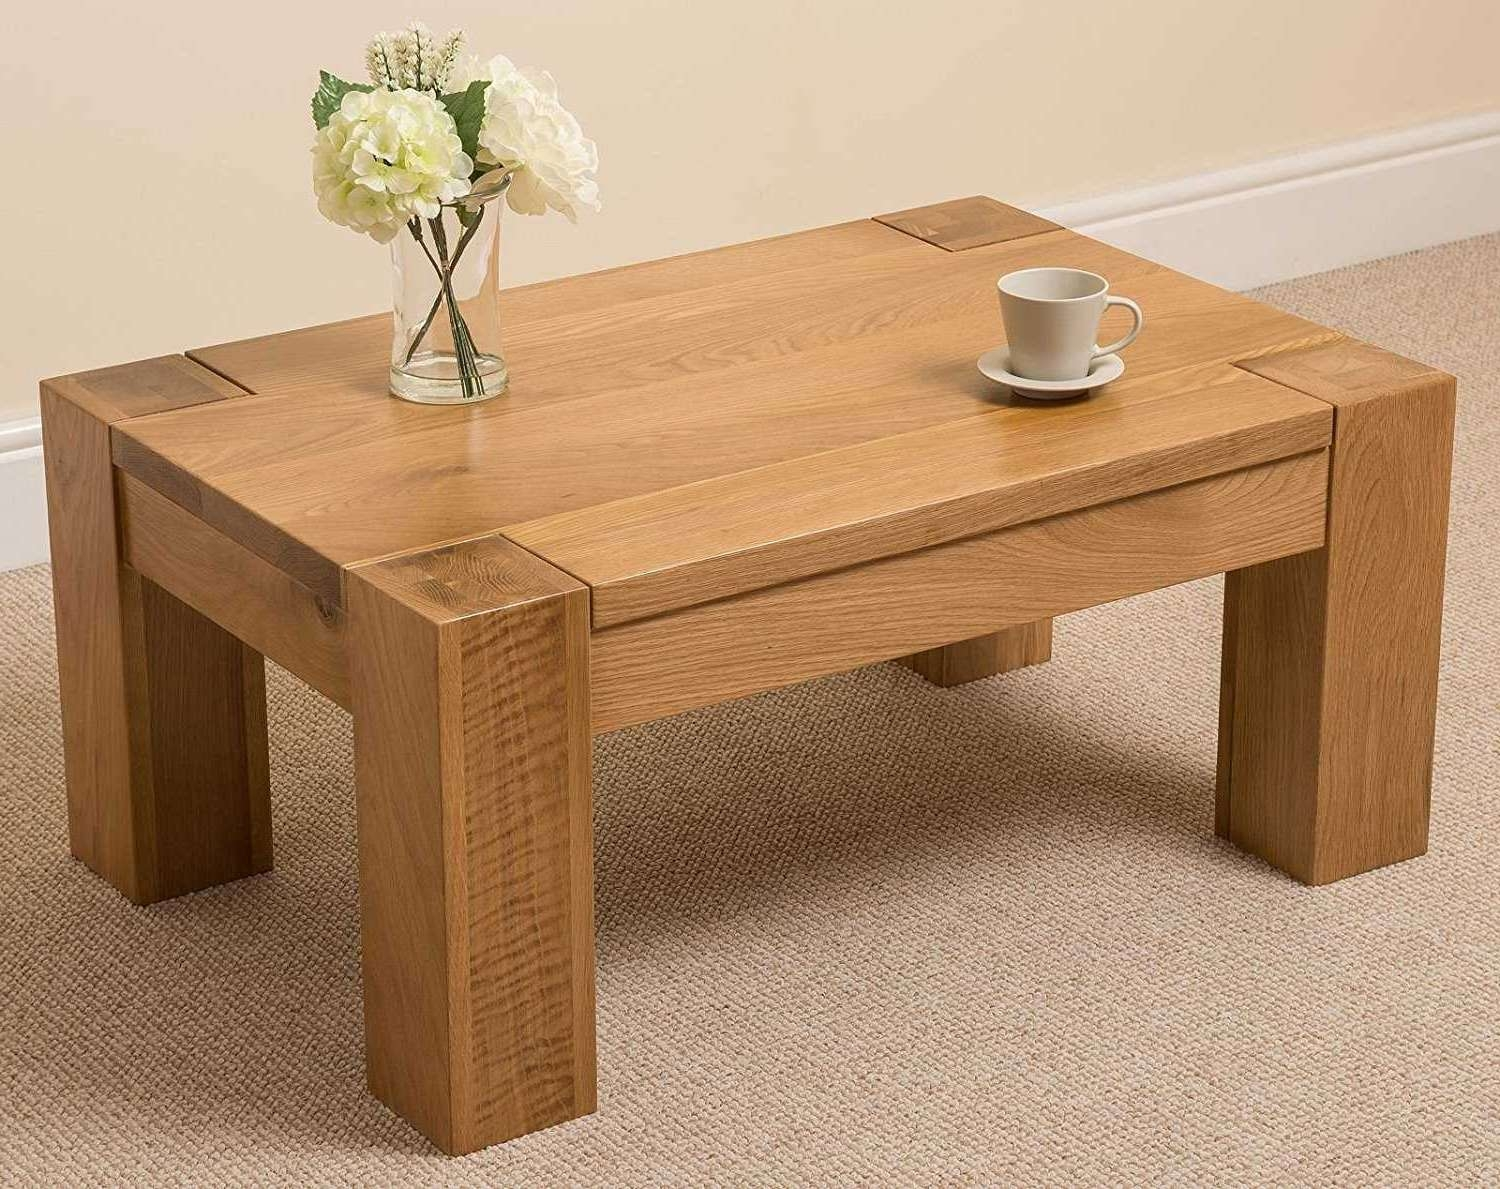 Favorite Square Coffee Table Oak Throughout Solid Coffee Table (View 17 of 20)